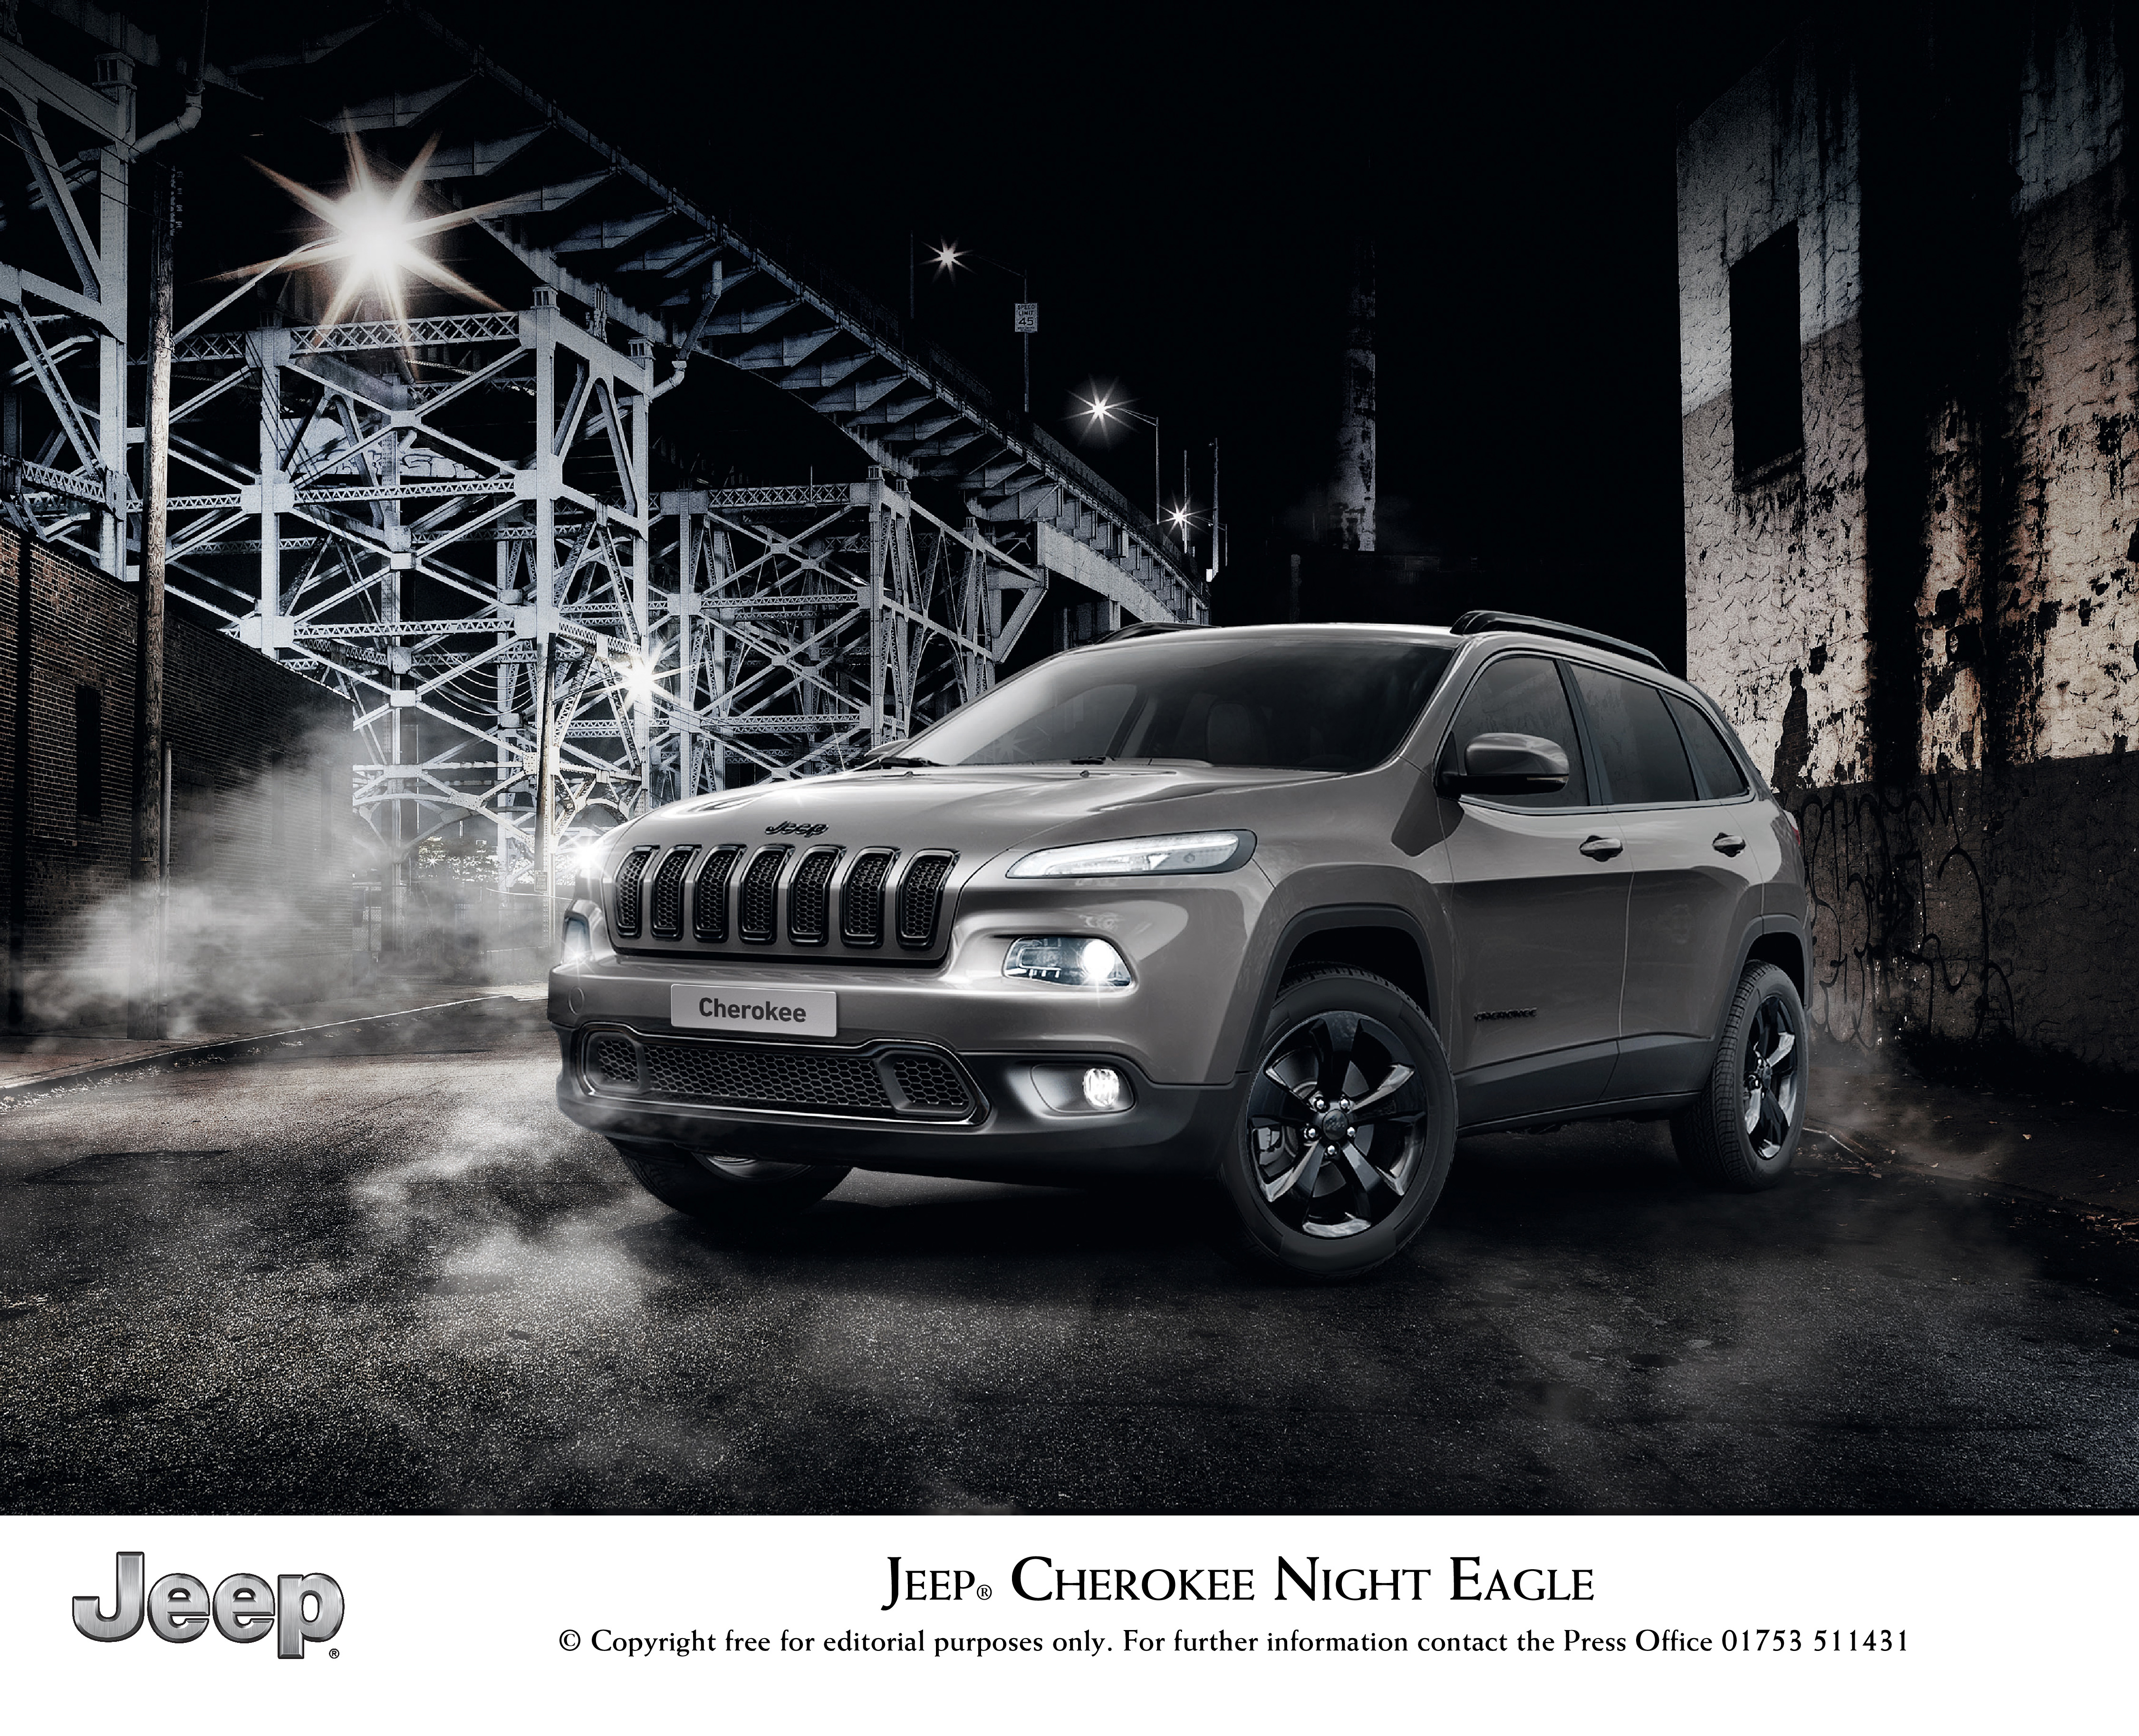 Jeep announces Cherokee NIGHT EAGLE LIMITED EDITION